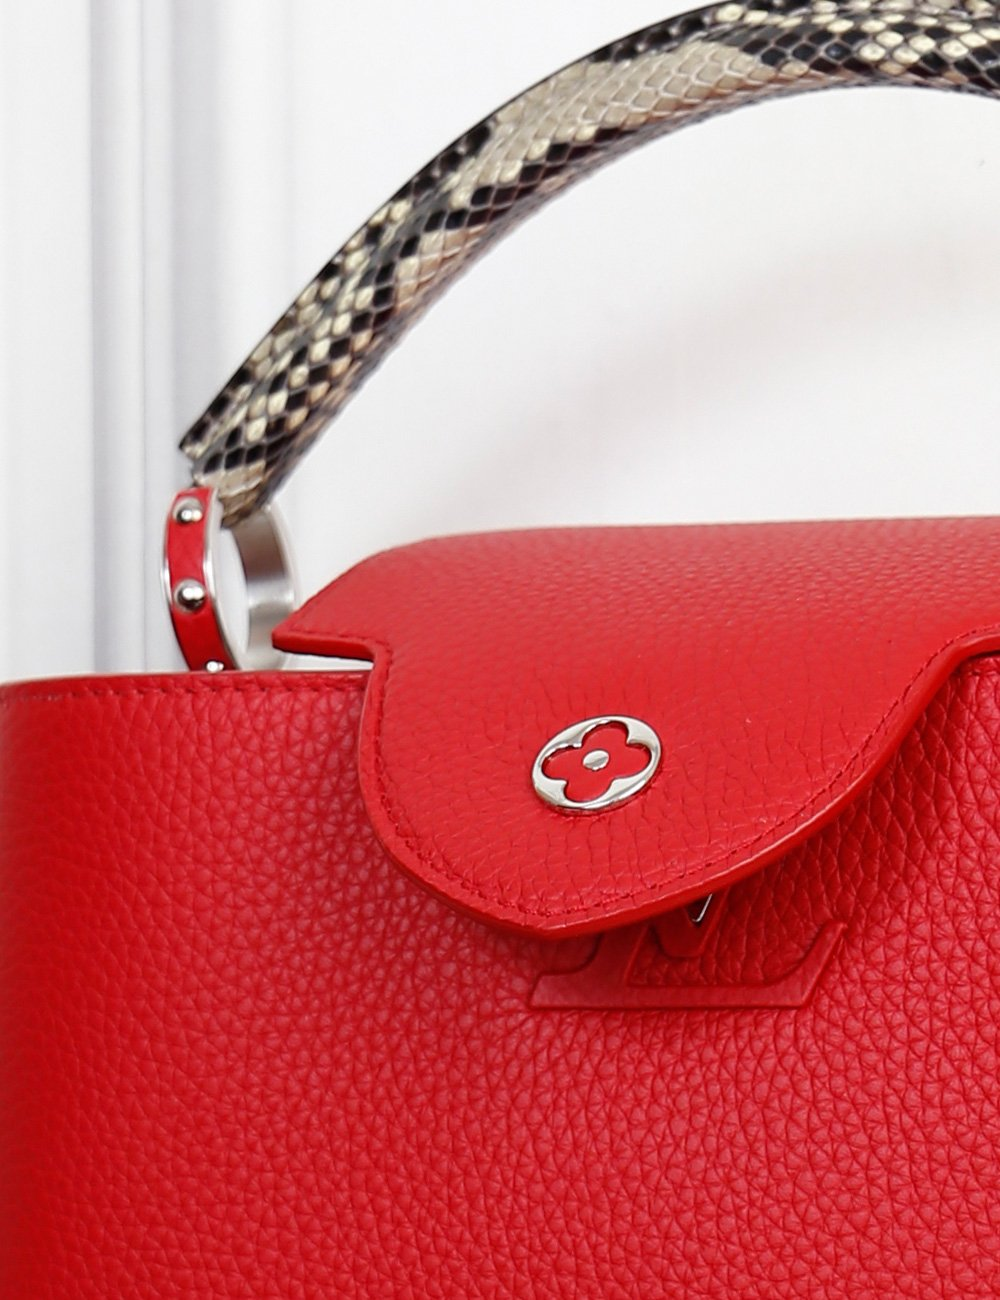 Louis Vuitton red Capucines PM Taurillon bag with python handle